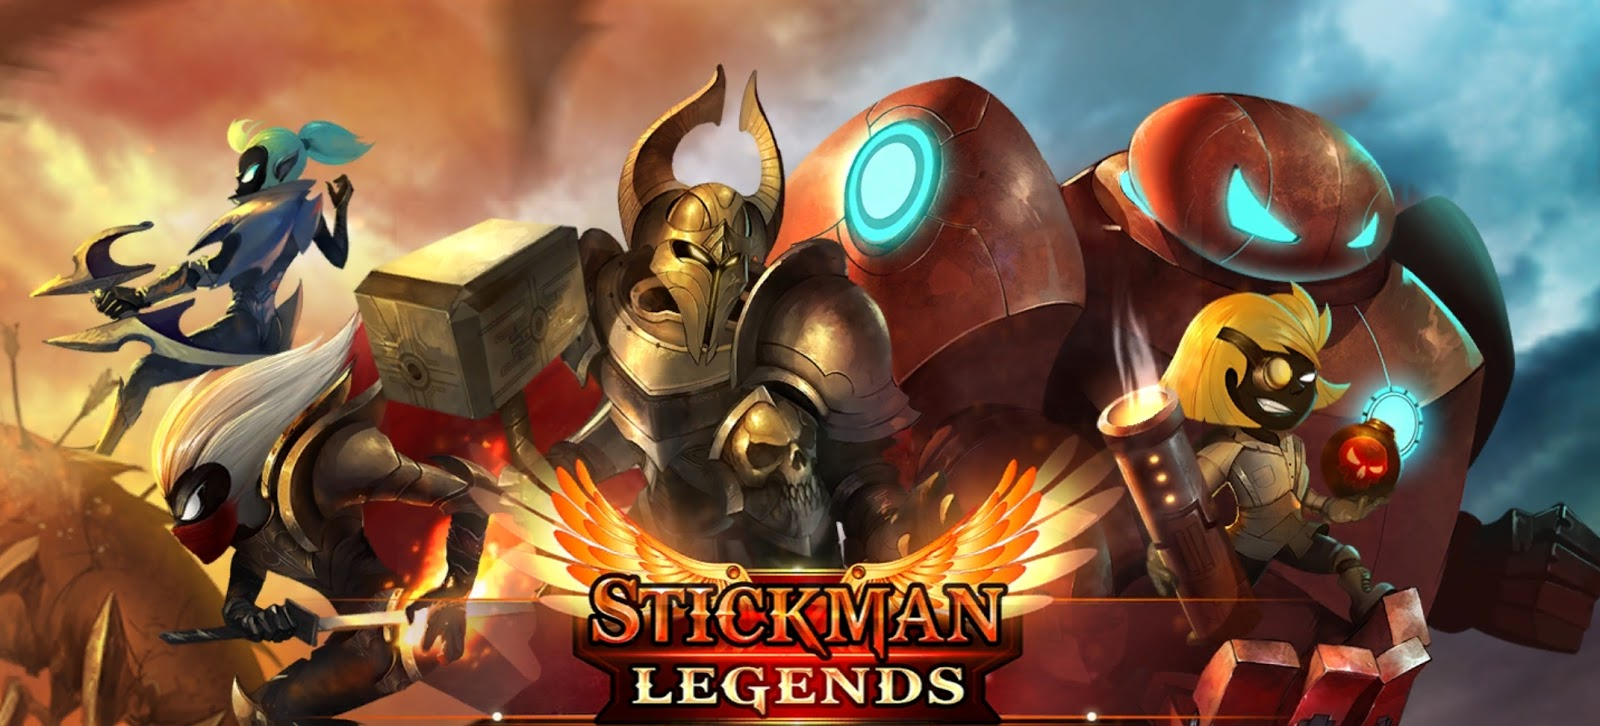 stickman legend : shadow war review, stickman legend review, kabar game terbaru, game rpg offline terbaik, game offline android, game rpg terbaik, info game terbaru, stickman legend gameplay,